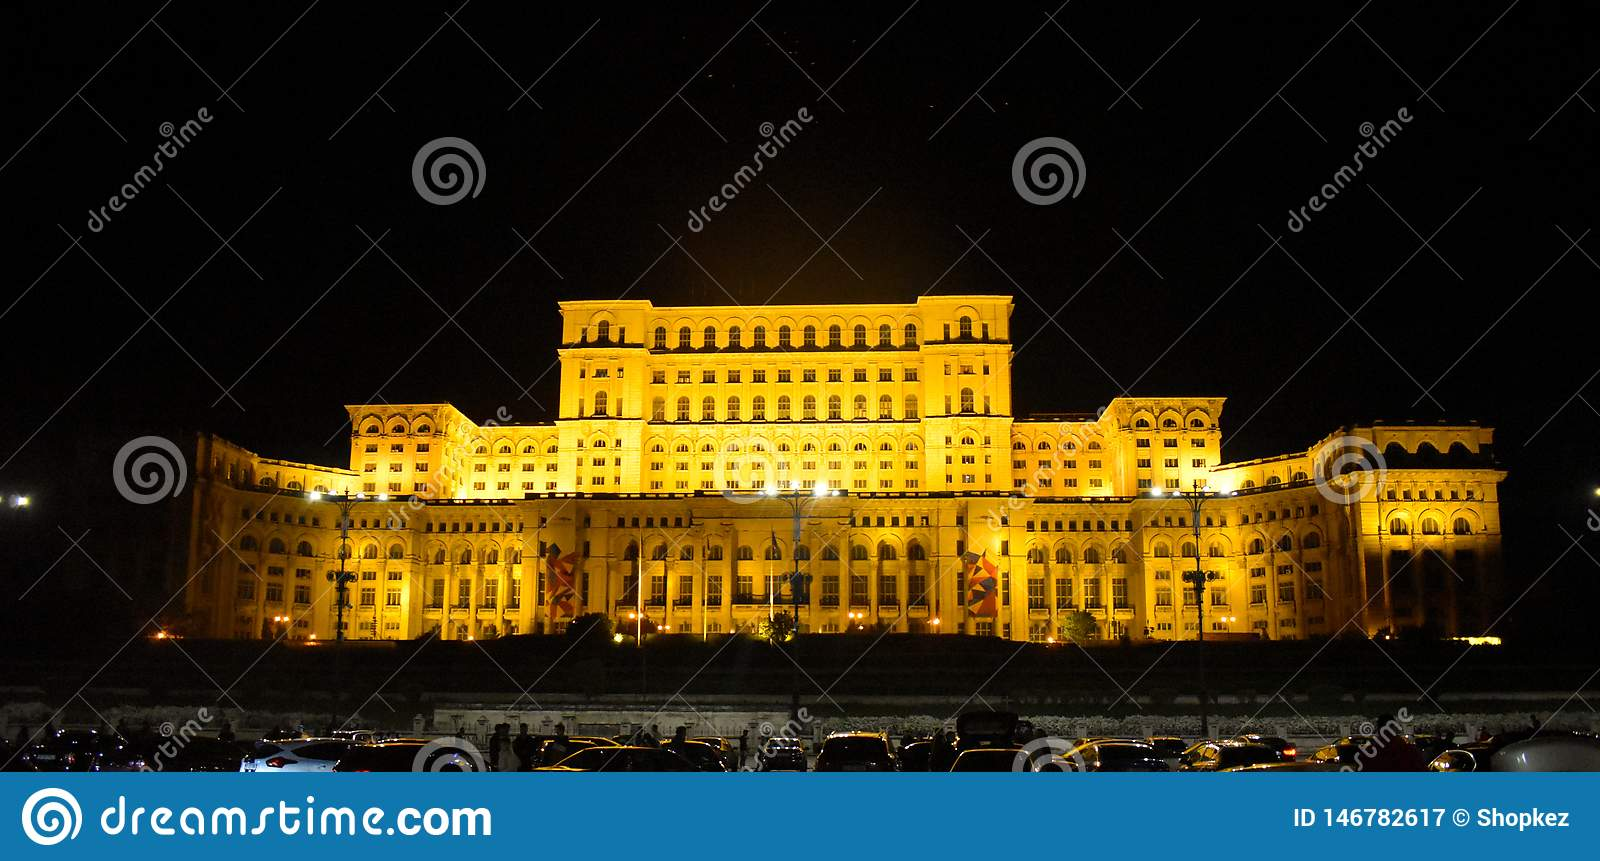 The Palace of the Parliament, Bucharest, Romania.Night view from the Central Square